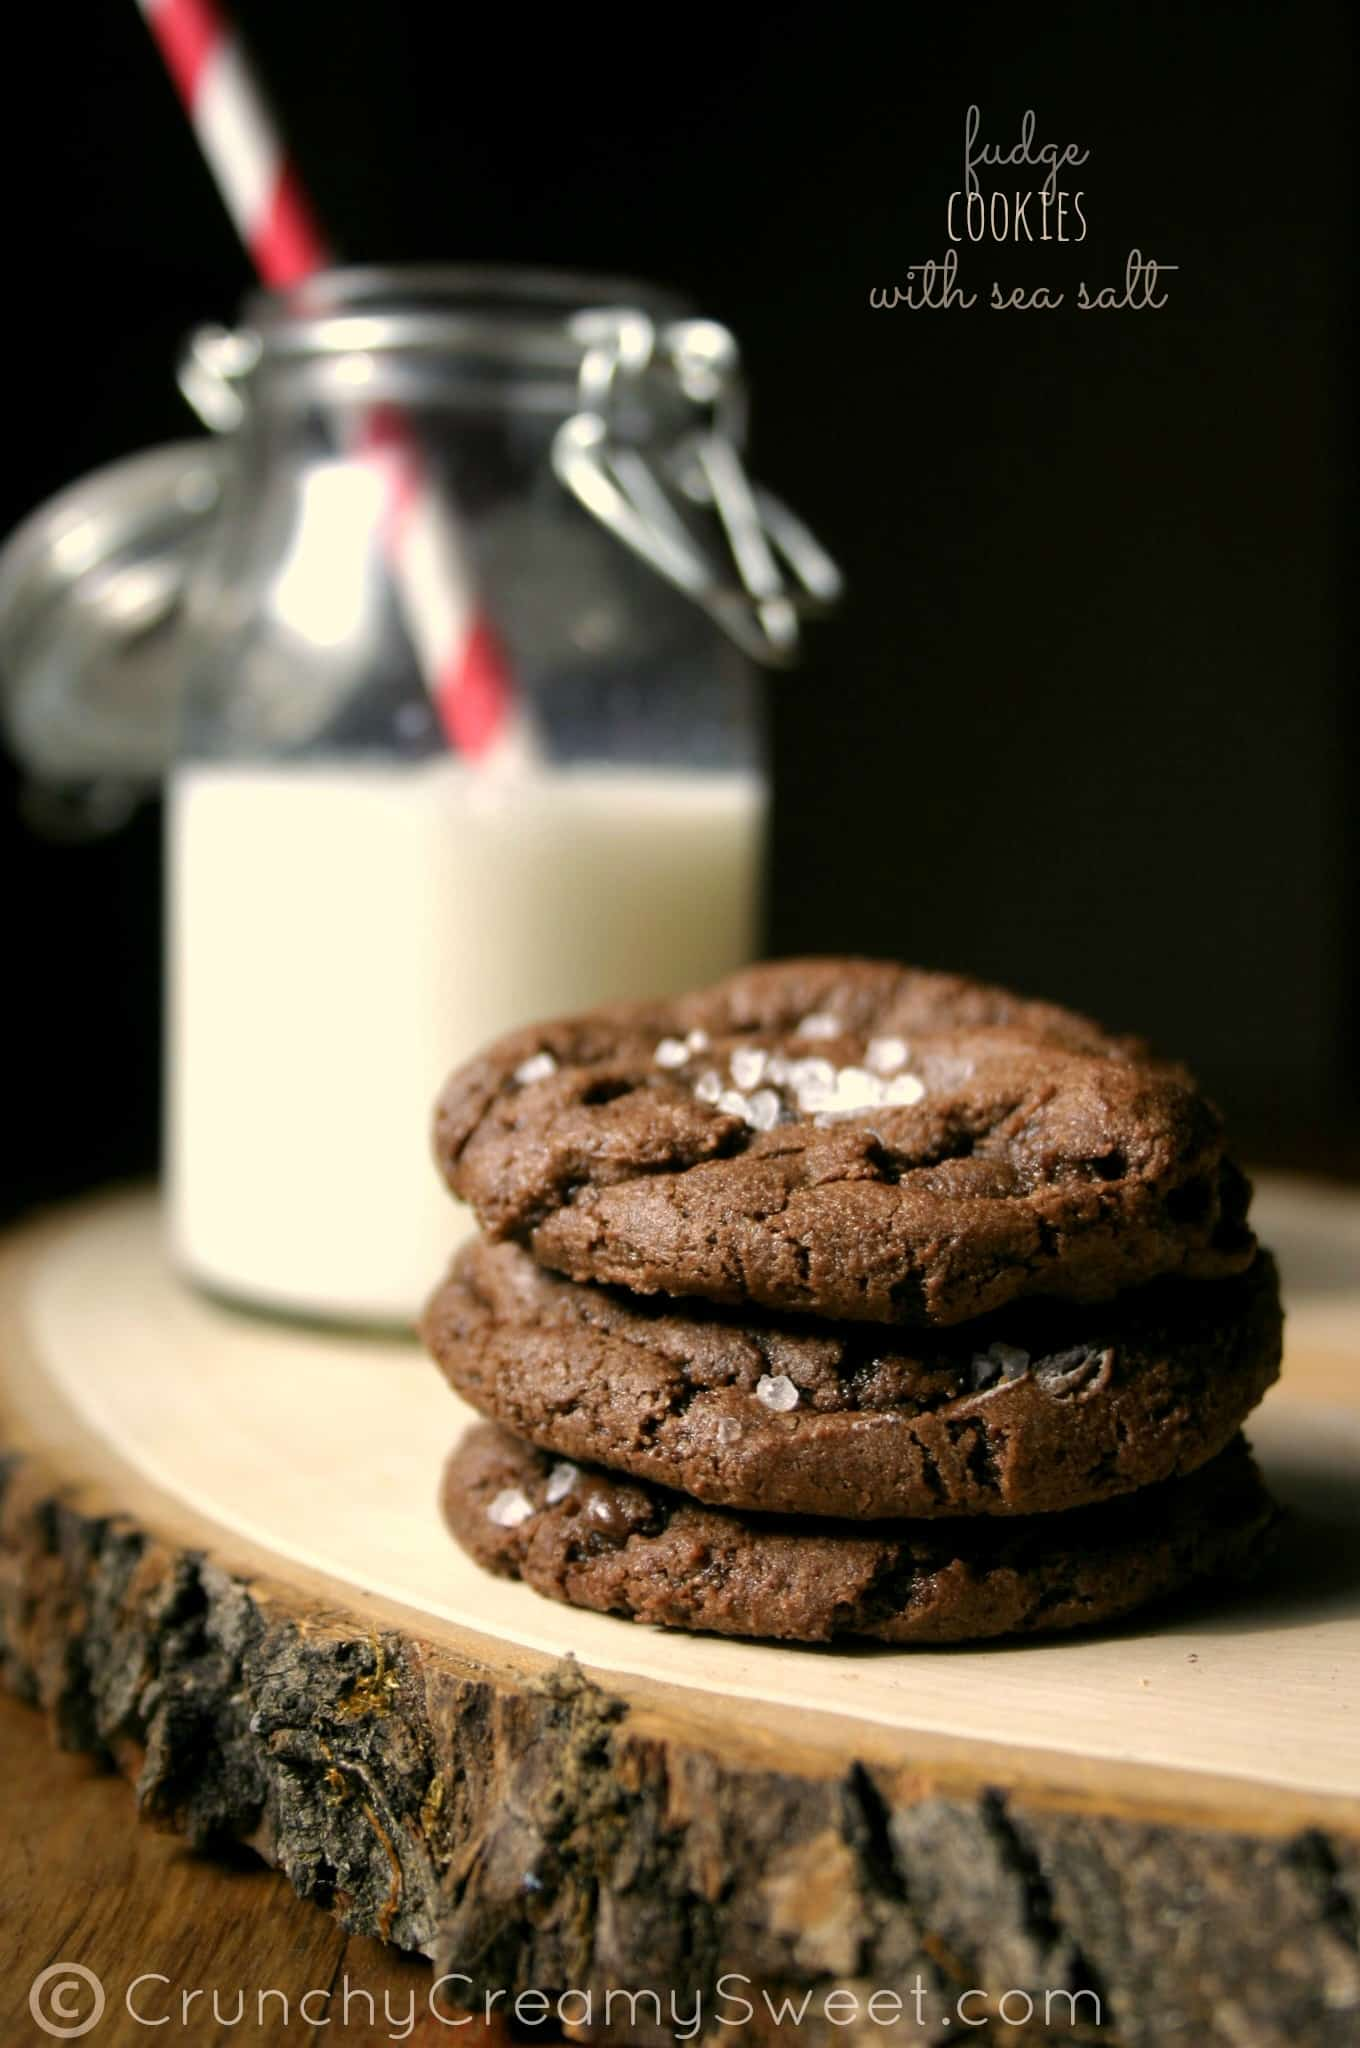 fudge cookiesA Chocolate Fudge Cookies with Sea Salt + GIVEAWAY!